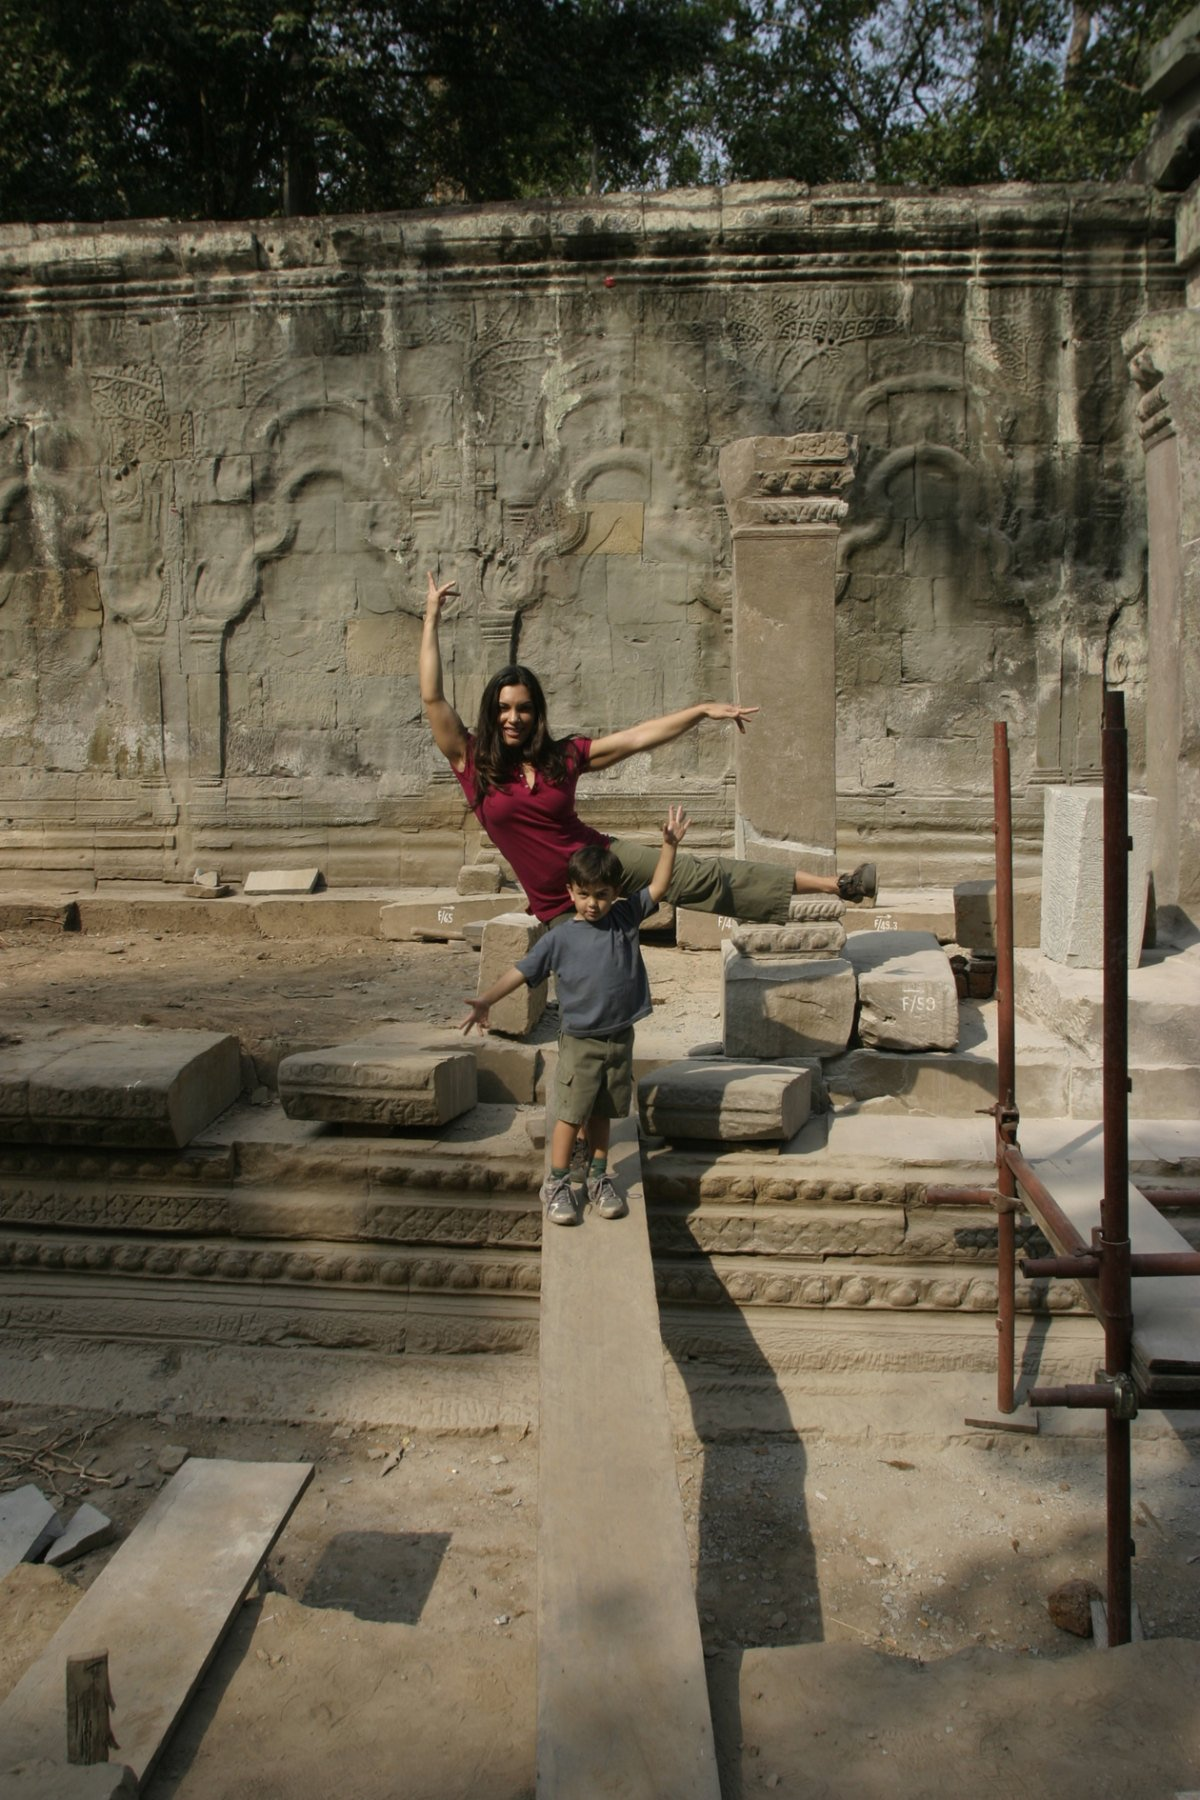 5-ld-and-cat-balancing-on-planks-remodeling-temples-feb-2008-cambodia10-24-2011